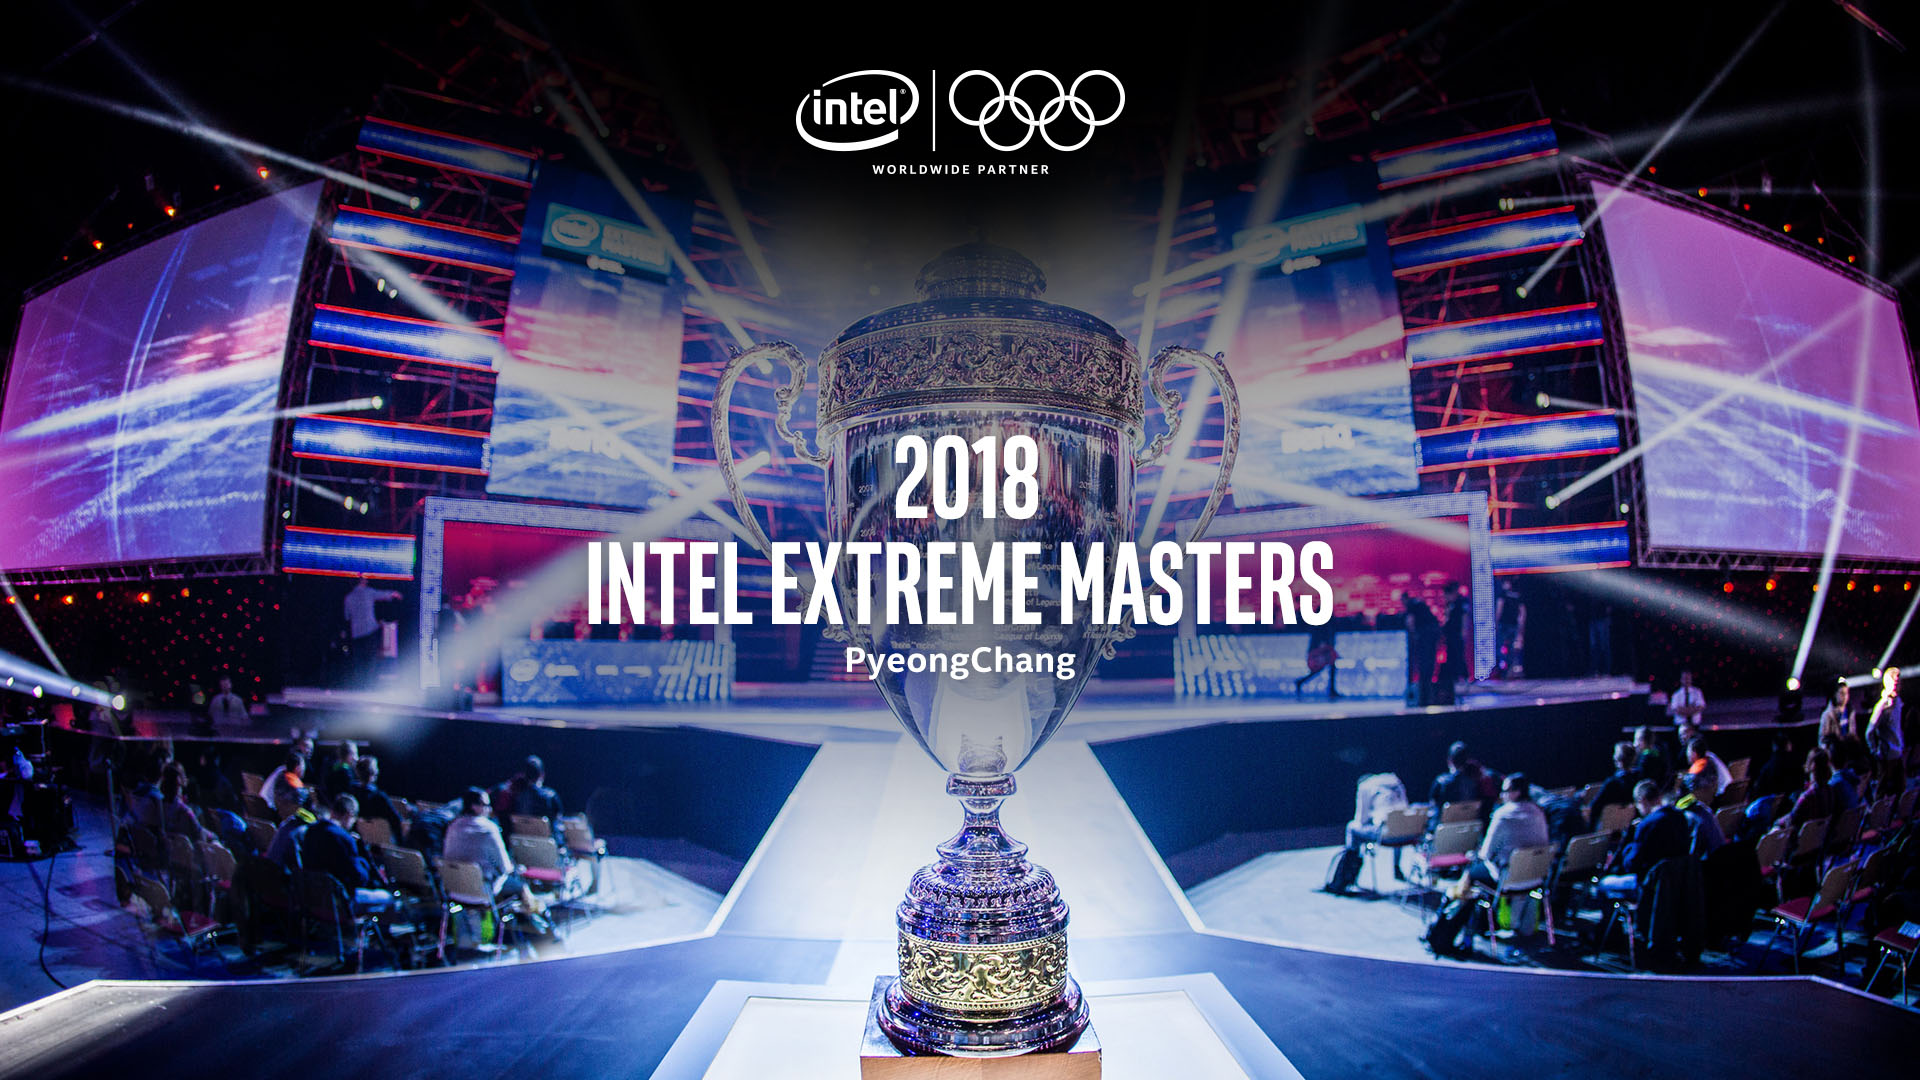 intel extreme masters jeux olympiques pyeongchang